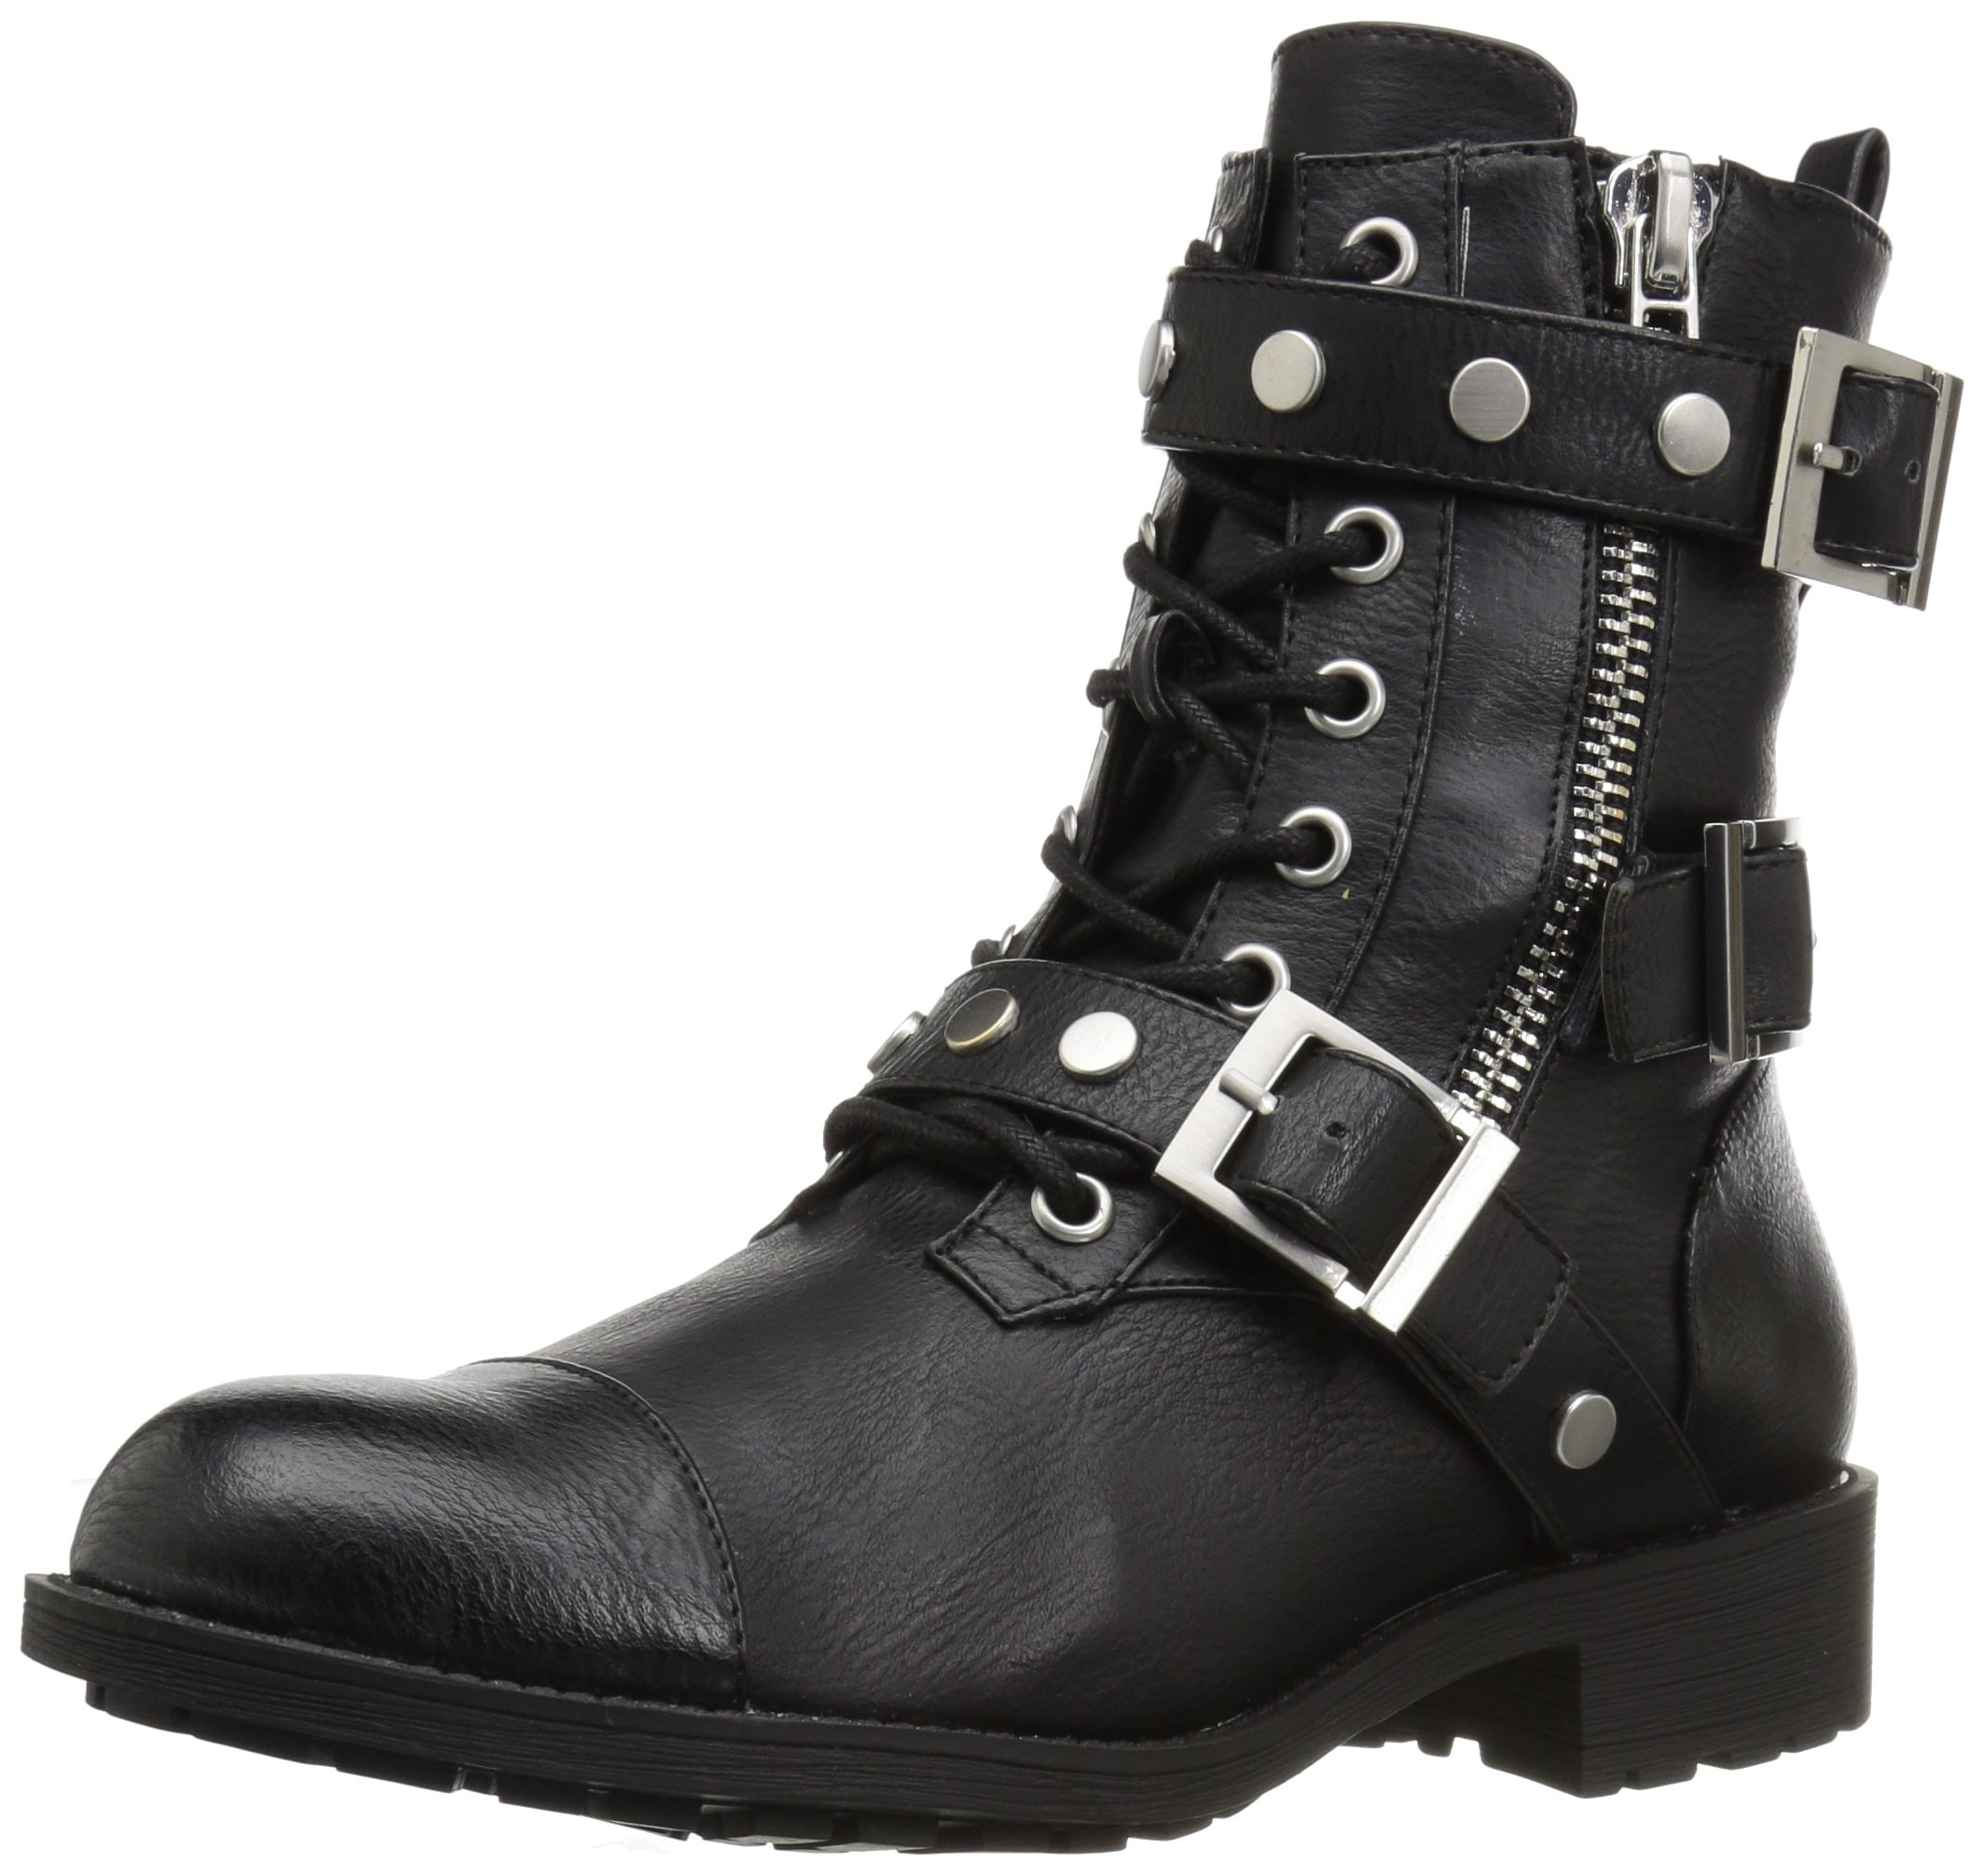 Style by Charles David Women's Caden Motorcycle Boot, Black, 9 Medium US by Style by Charles David